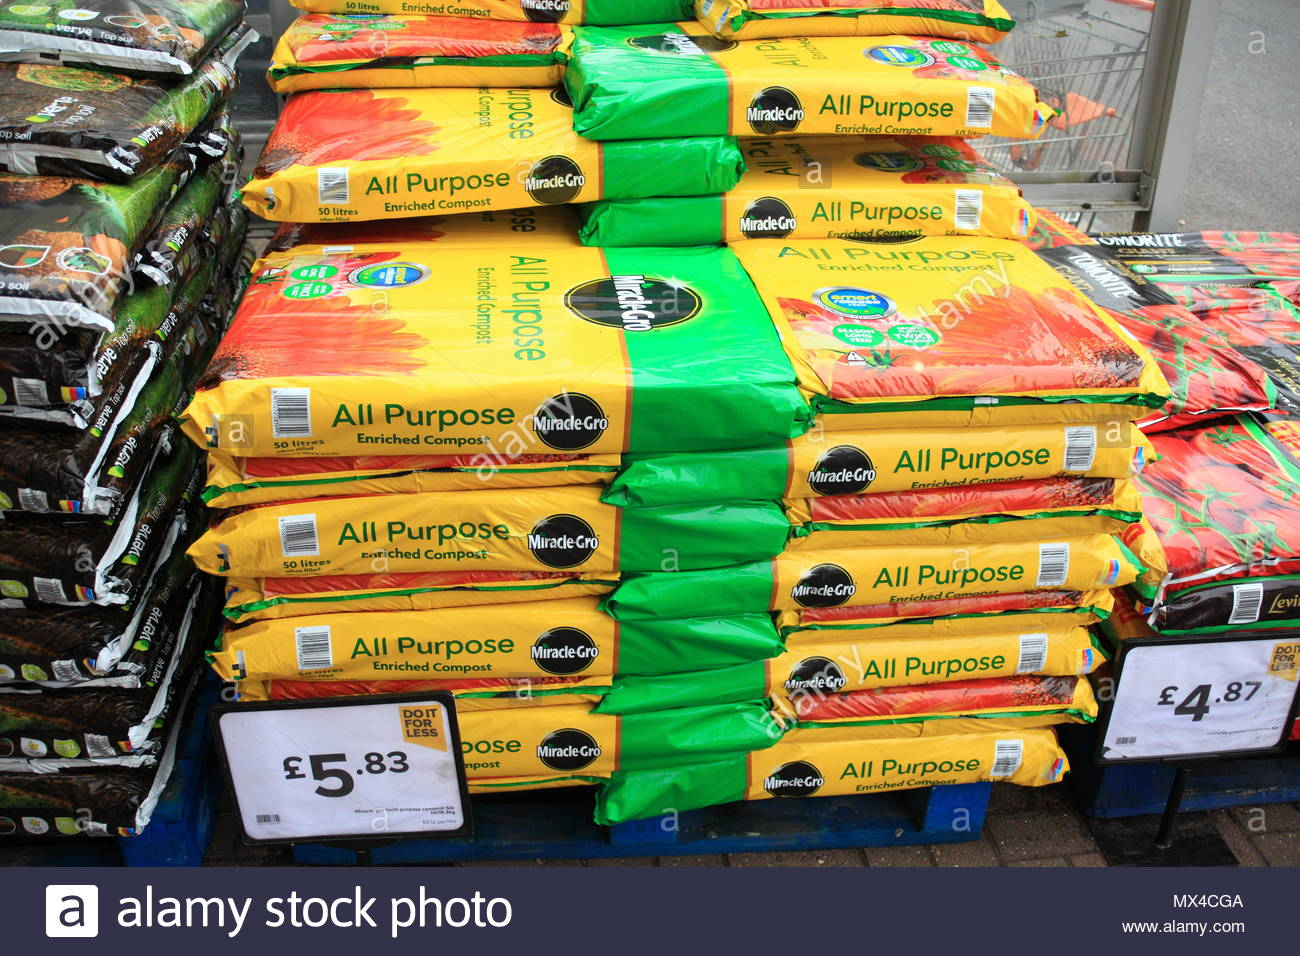 Compost In Stack At Snipe Retail Park Ashton-Under-Lyne Tameside Greater Manchester June 2018 - Stock Image